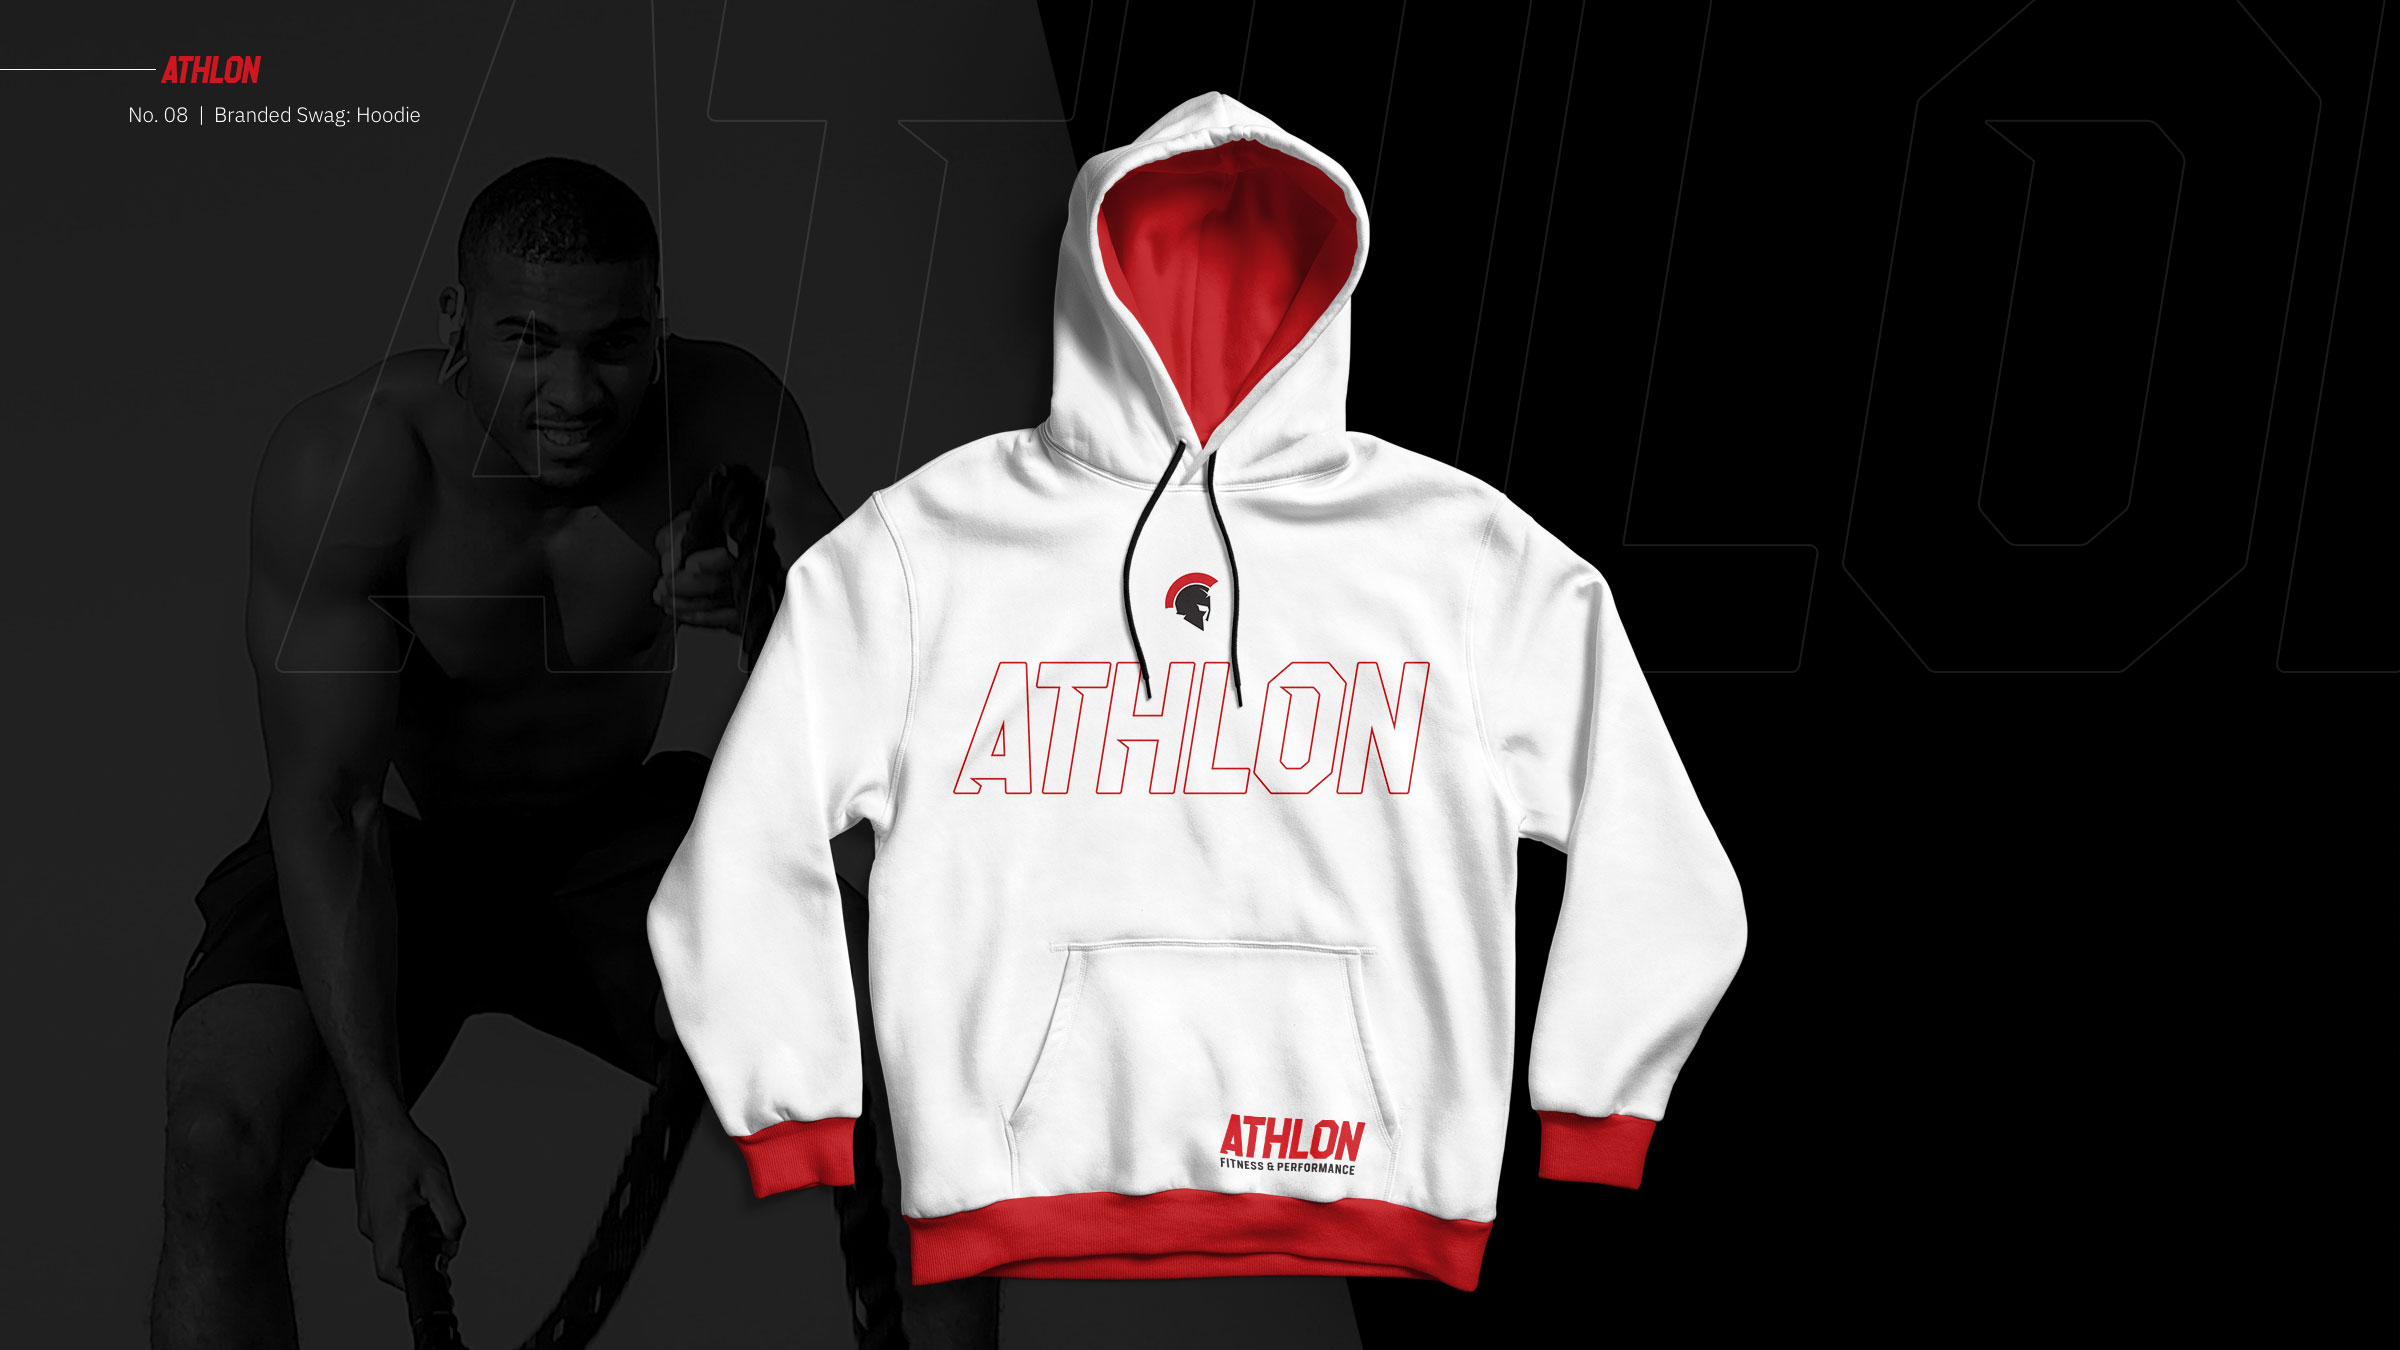 Athlon-Brand-Refresh-08-Branded-Swag-Hoodie